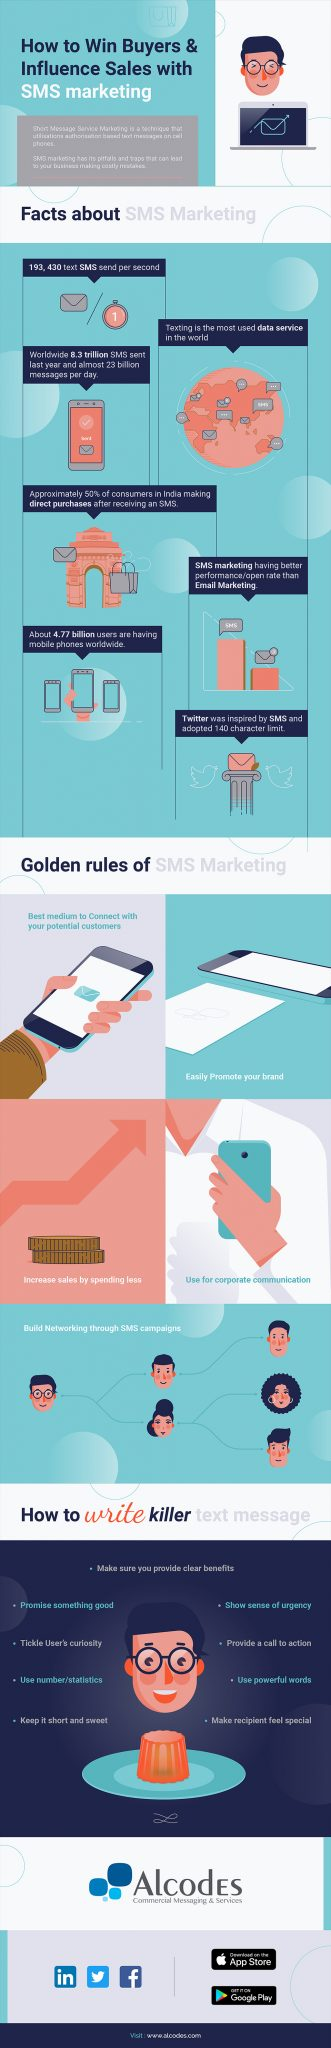 sms marketing infographic